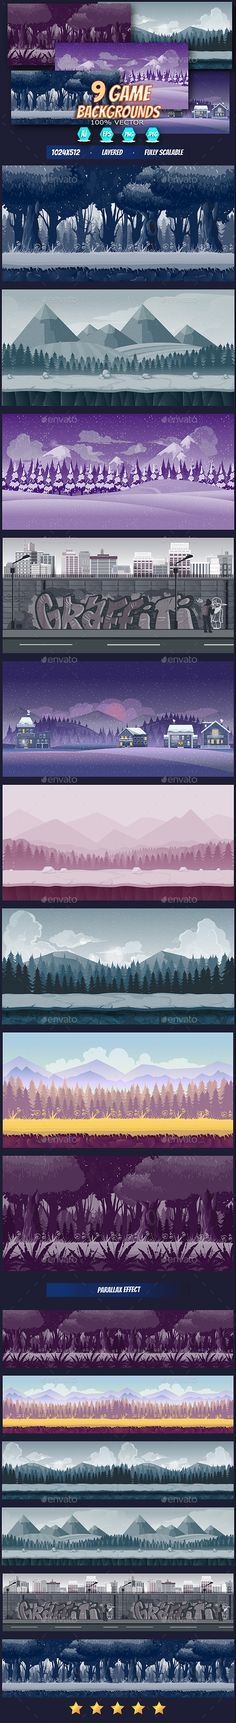 Game Backgrounds Set Design Template - Backgrounds Game Assets Design Template Vector EPS, AI Illustrator. #GameUI #GameUX Download here: https://graphicriver.net/item/game-backgrounds-set/19208948?ref=yinkira